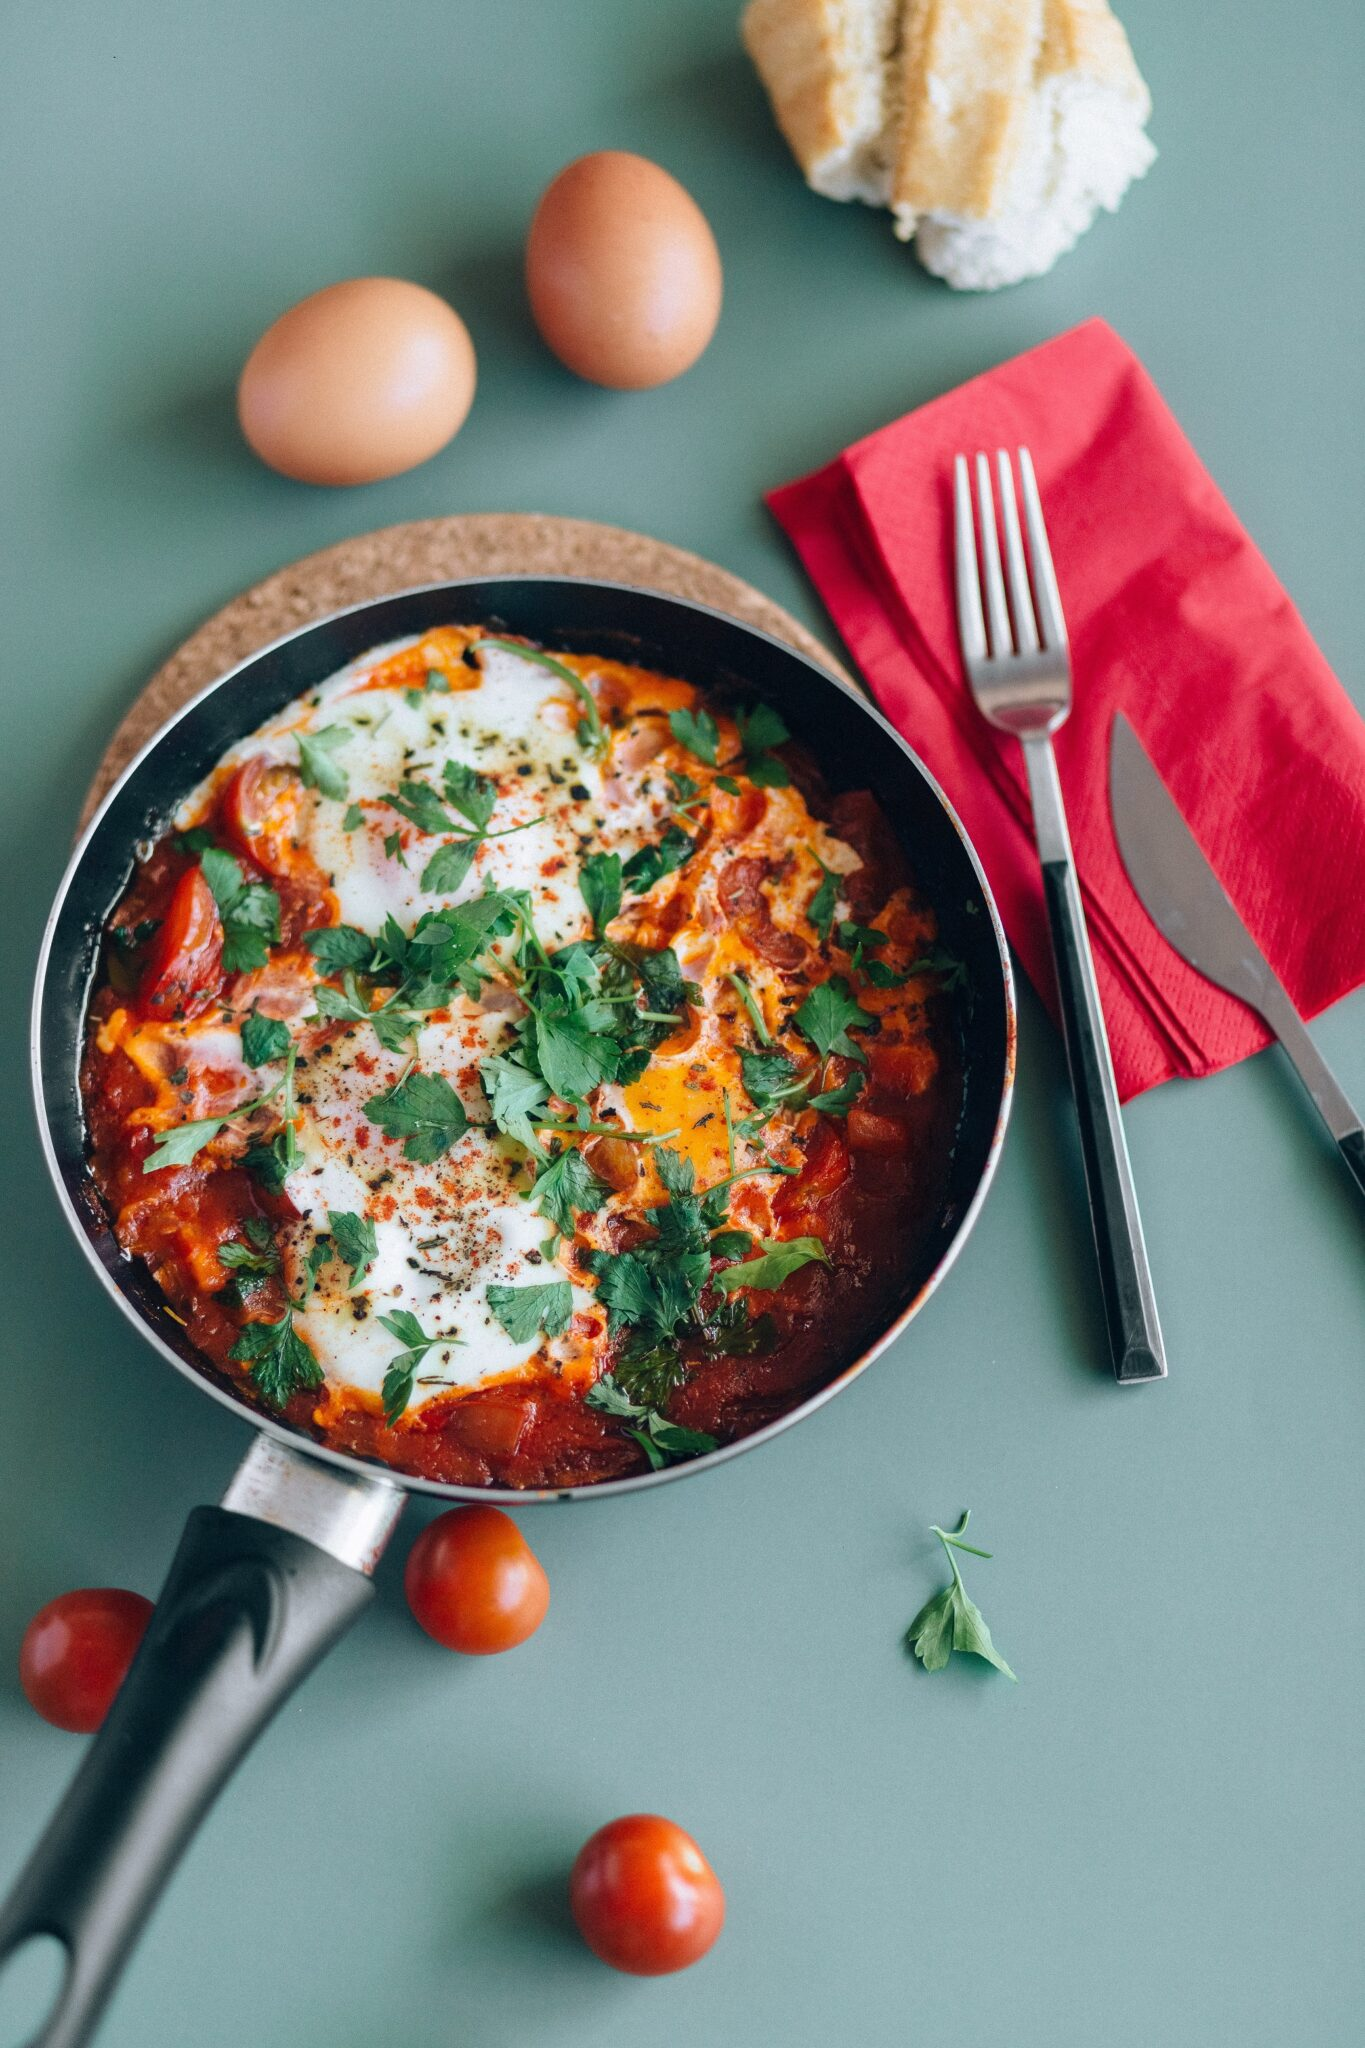 Shakshuka – Eggs and Tomato Breakfast